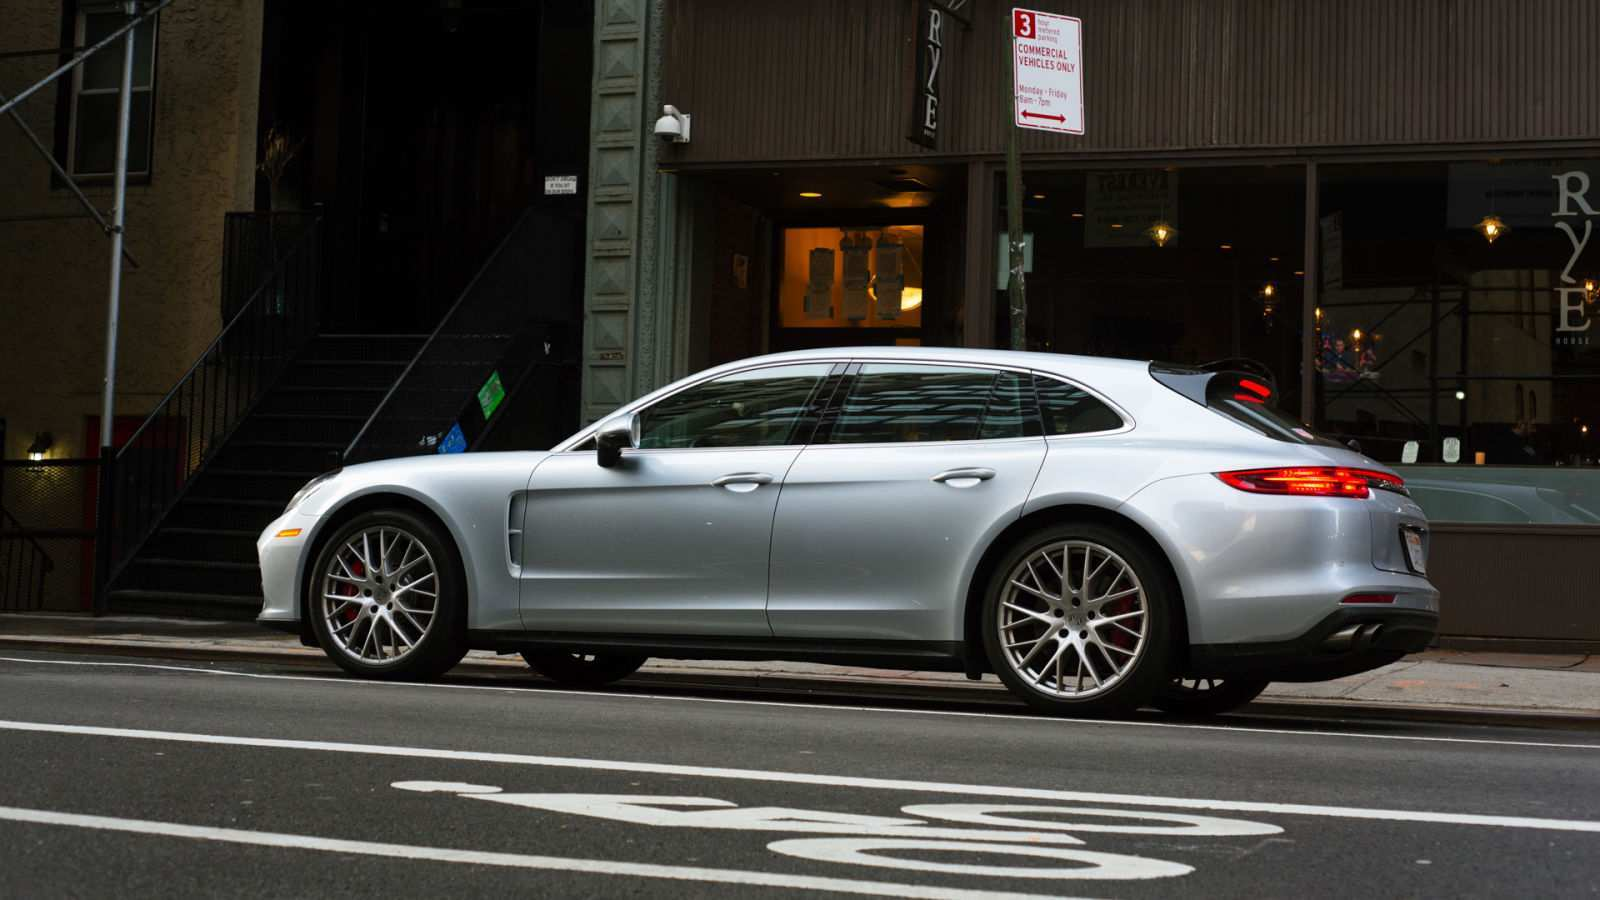 67 All New 2019 The Porsche Panamera Prices